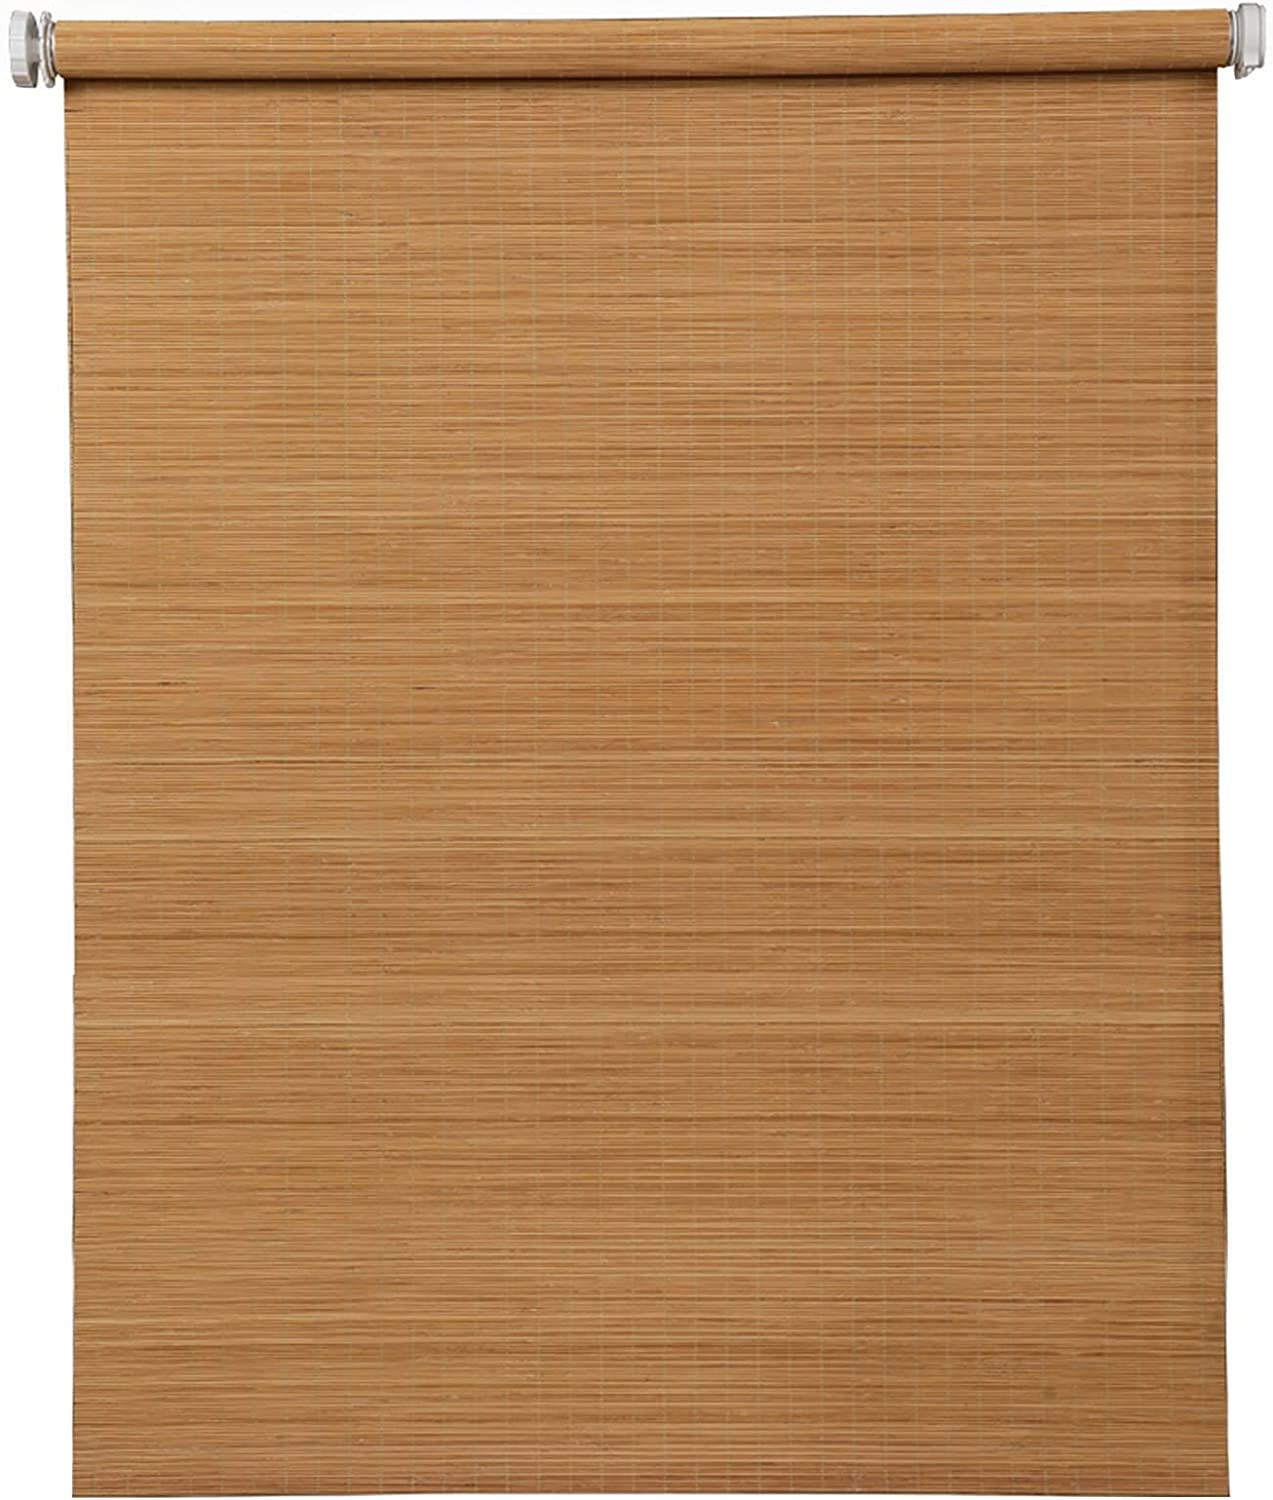 ZEMIN Gorgeous Bamboo Curtain Roller Blind Shades Max 62% OFF Hand-Lift Roman Window